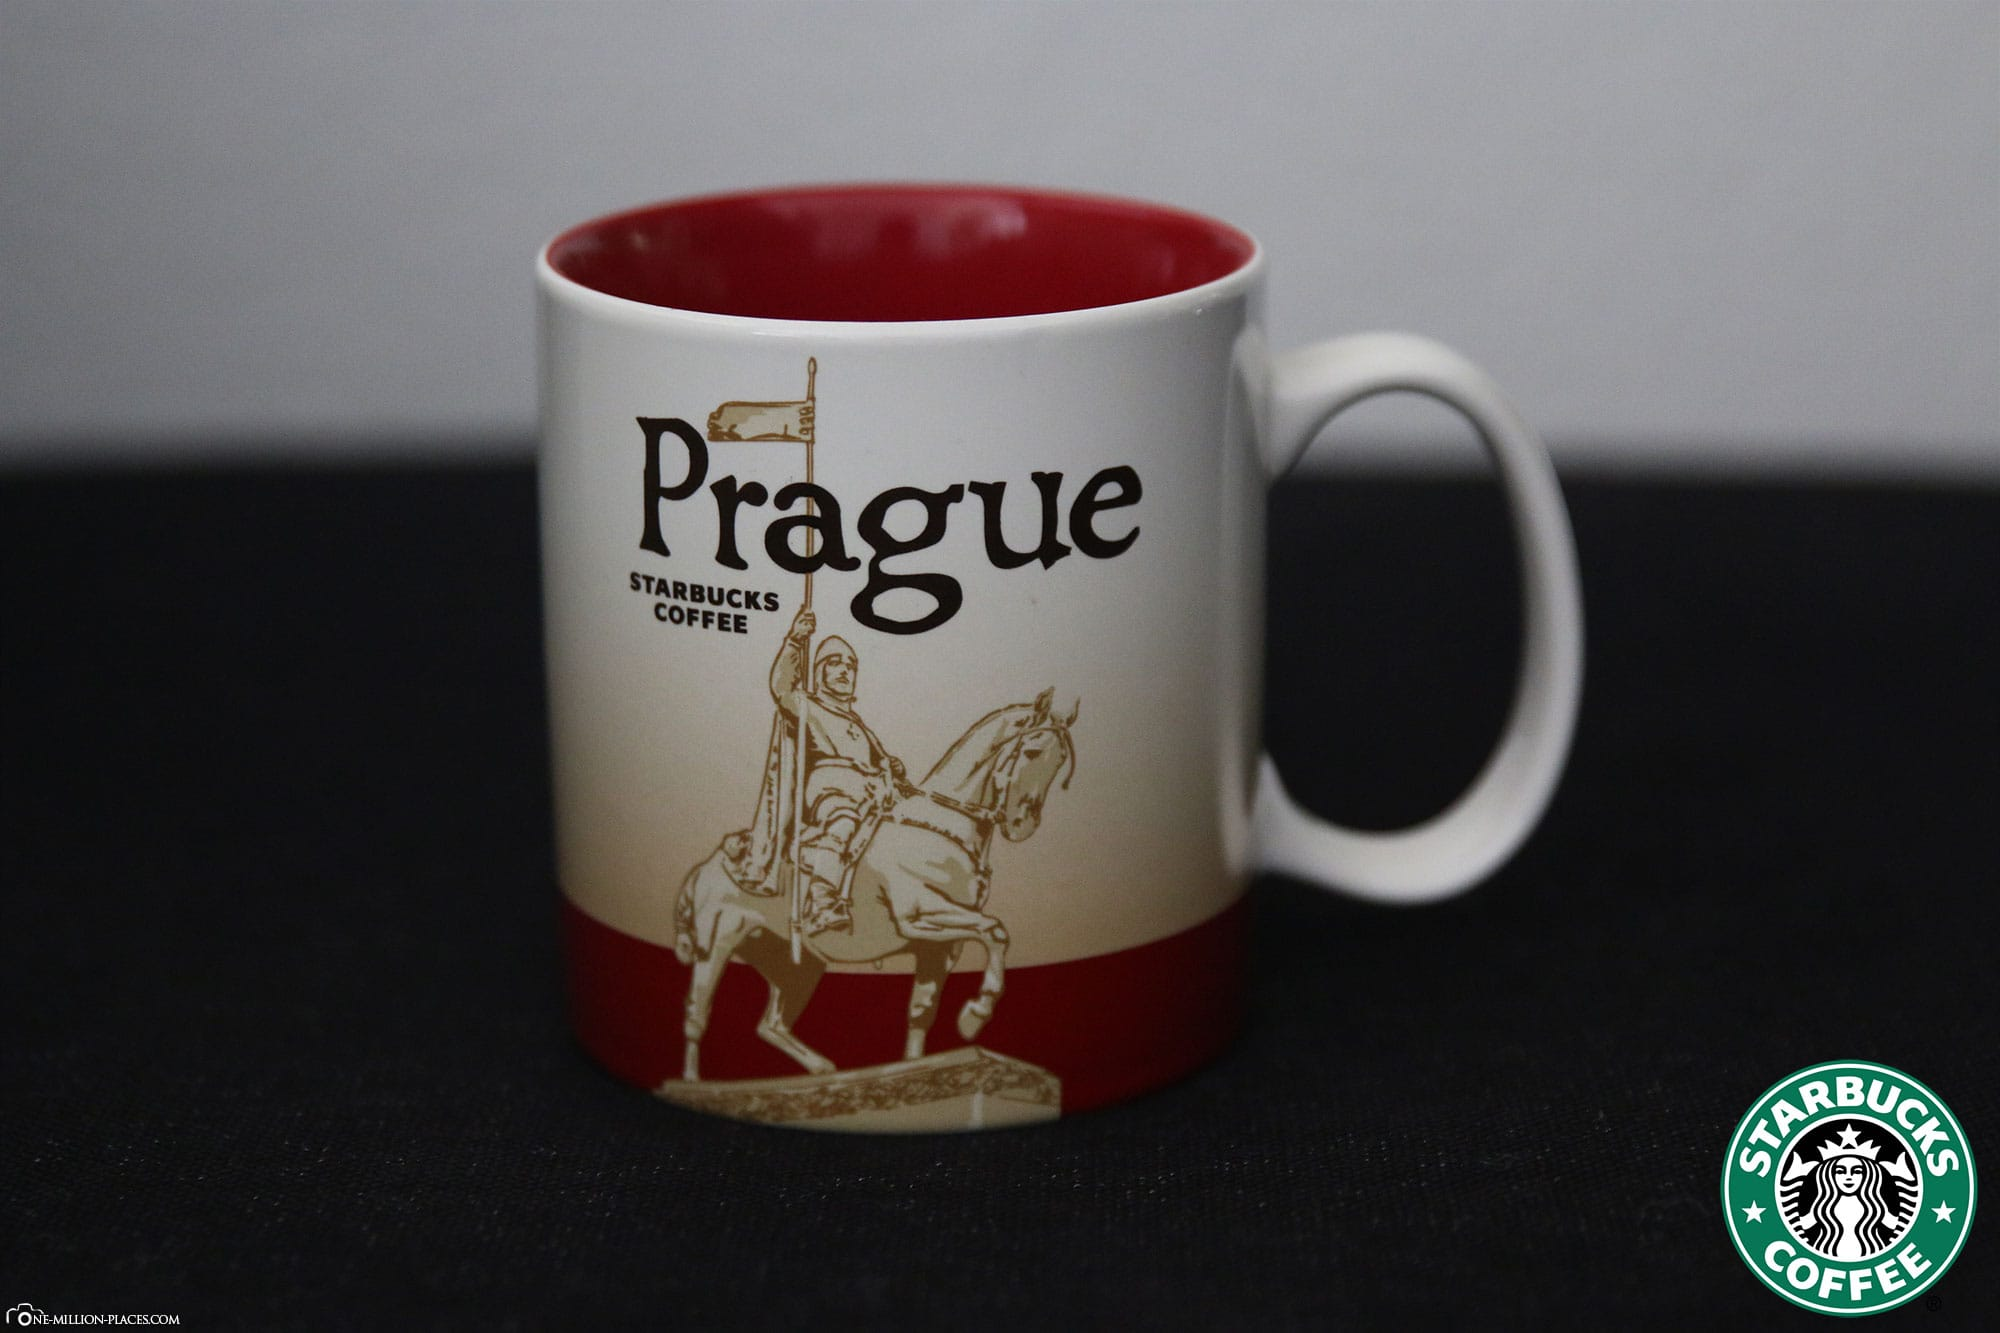 Prague, Starbucks Cup, Global Icon Series, City Mugs, Collection, Czech Republic, Travelreport